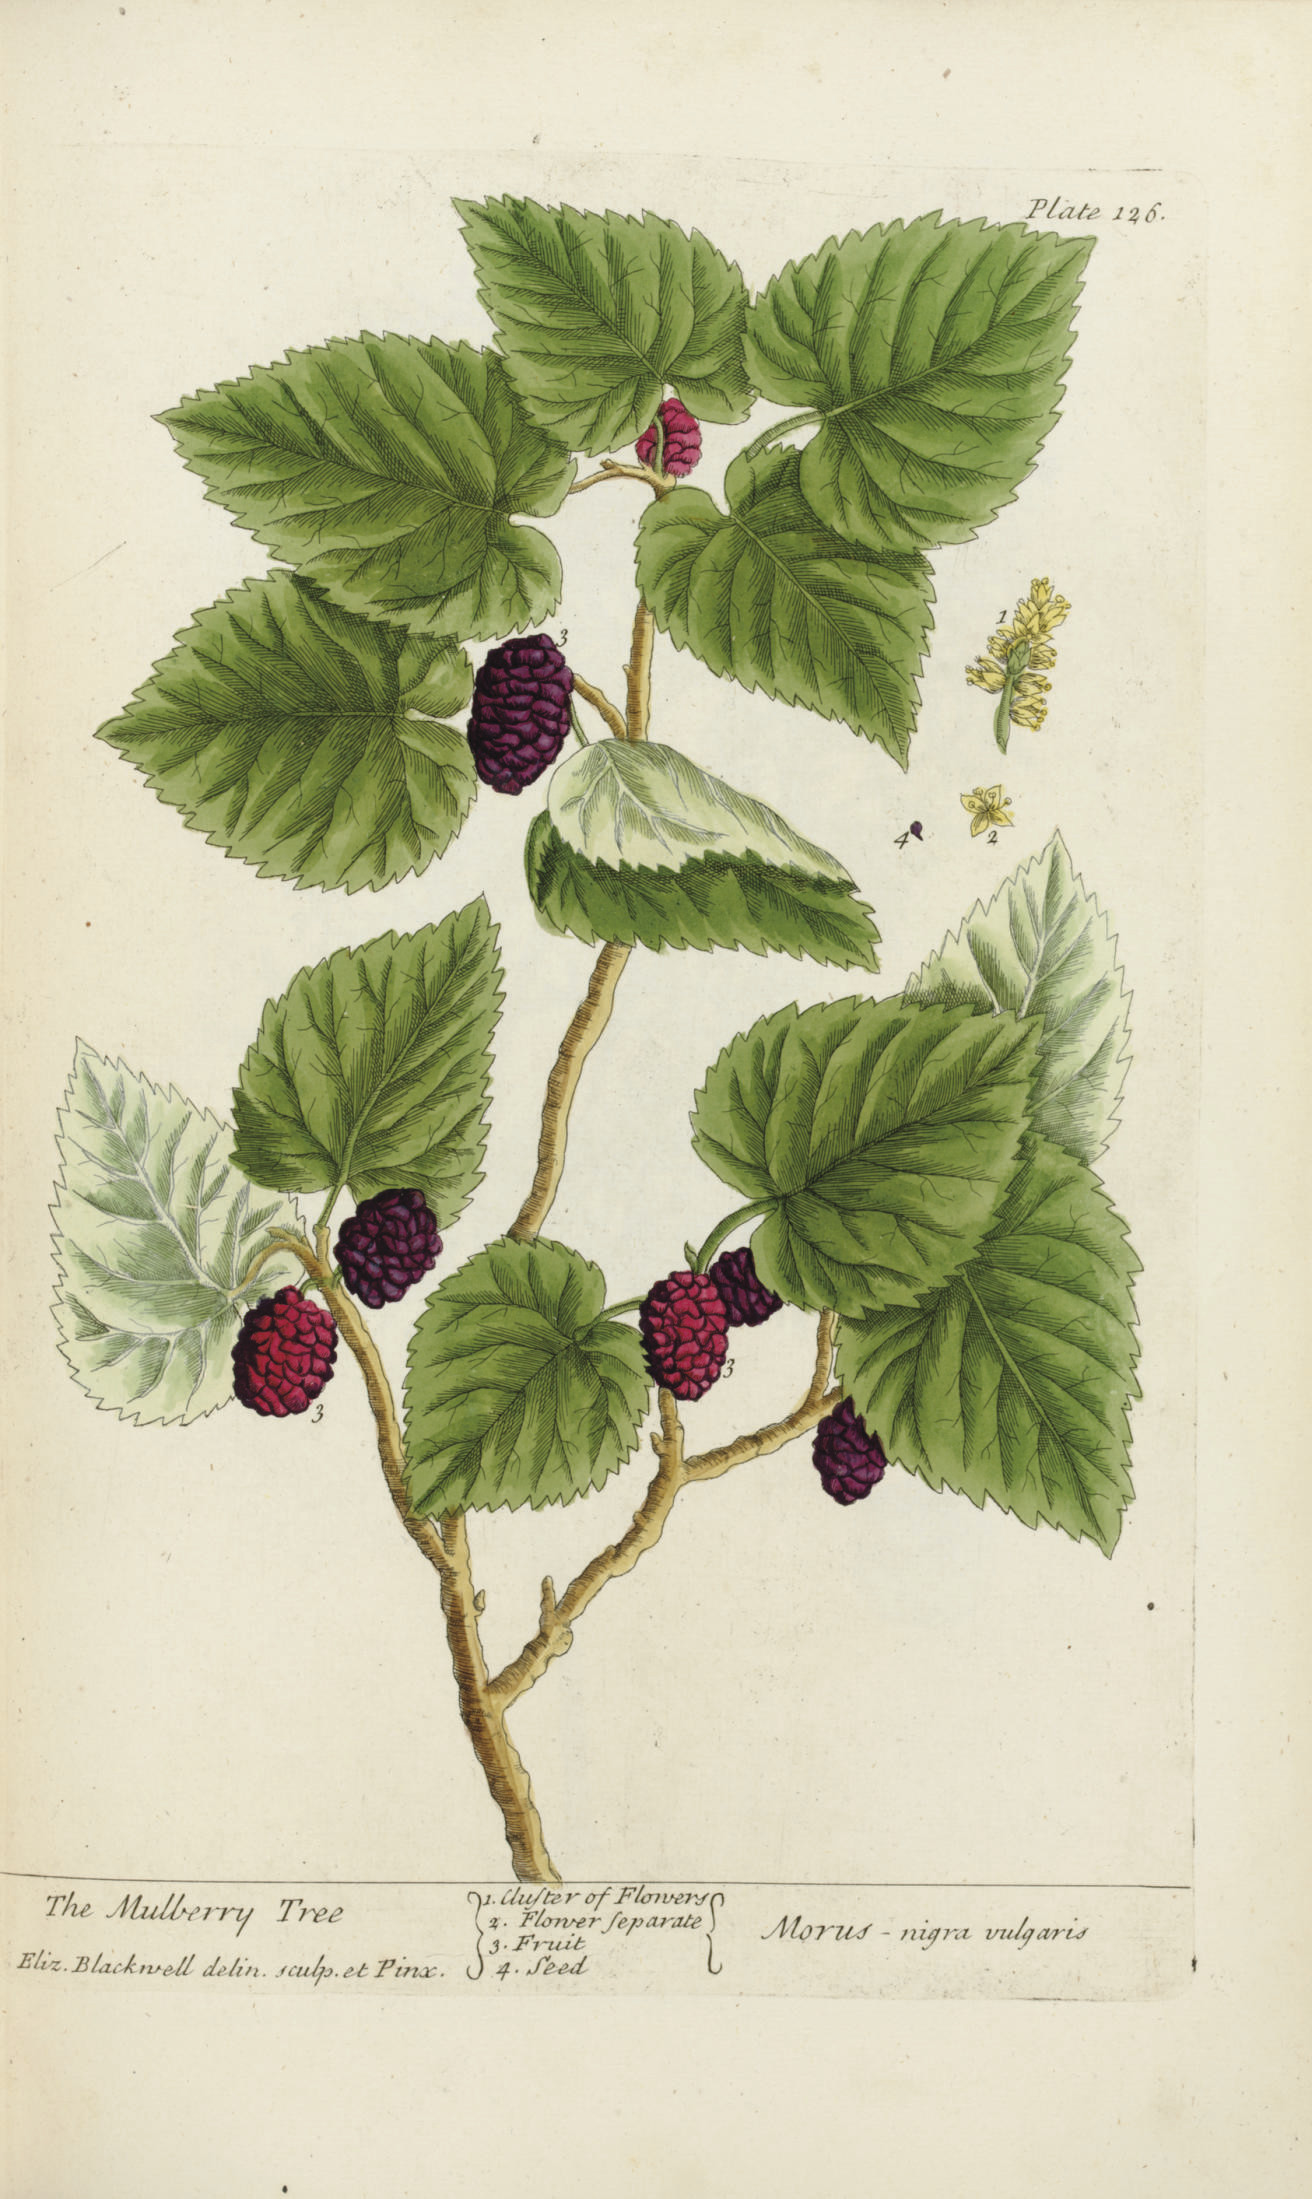 BLACKWELL, Elizabeth (ca 1700-1758). A Curious Herbal, containing five hundred cuts of the most useful plants... from drawings taken from life. London: Samuel Hading, 1737[-?1739].